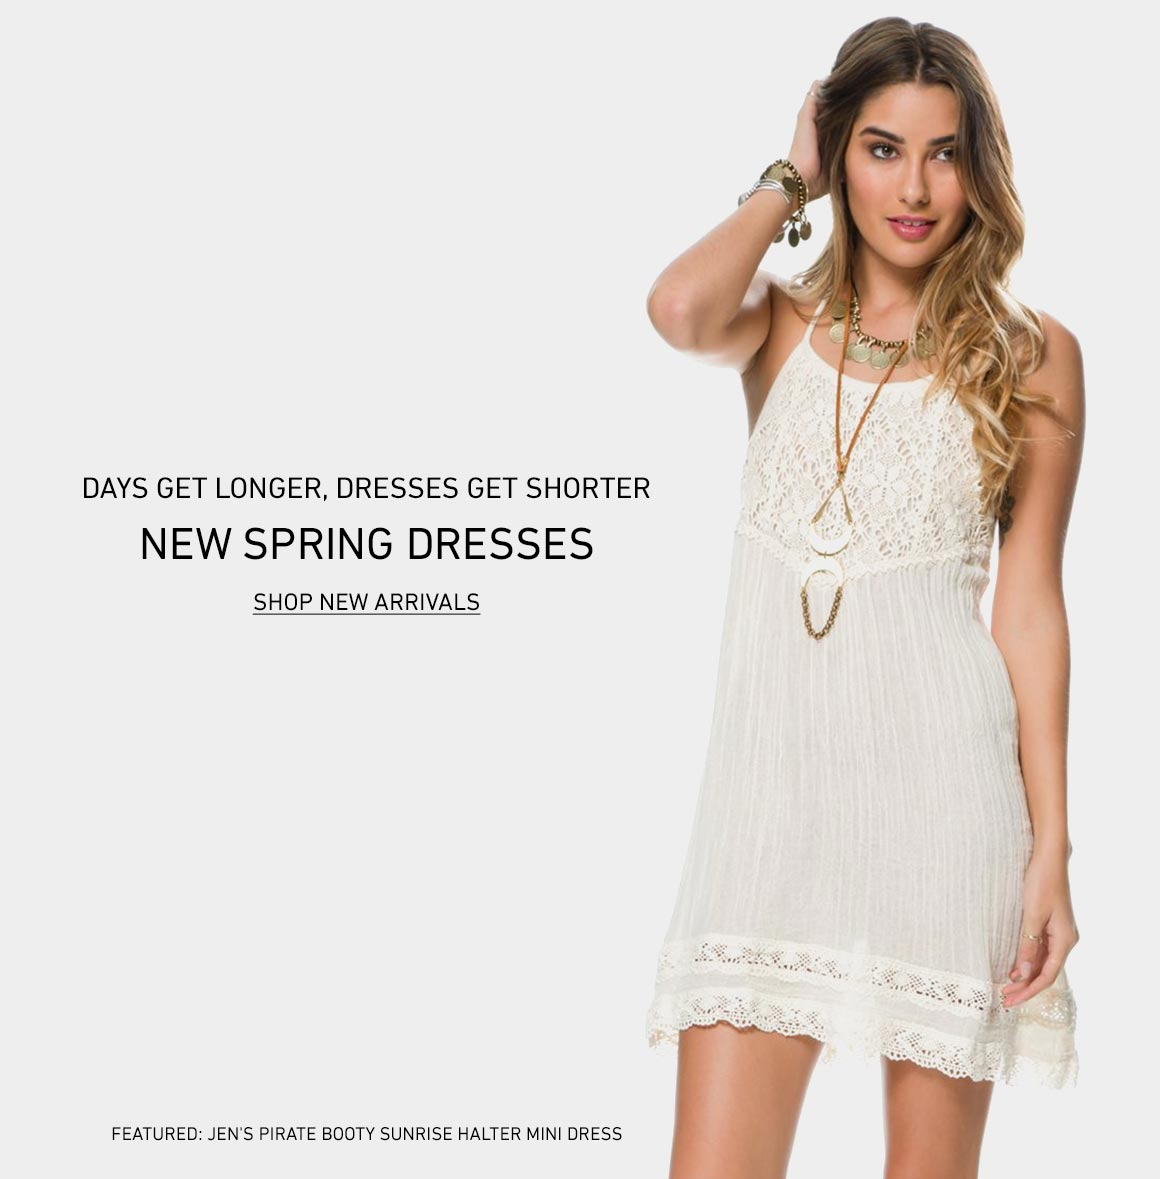 Days Get Longer, Dresses Get Shorter: Shop New Spring Dresses